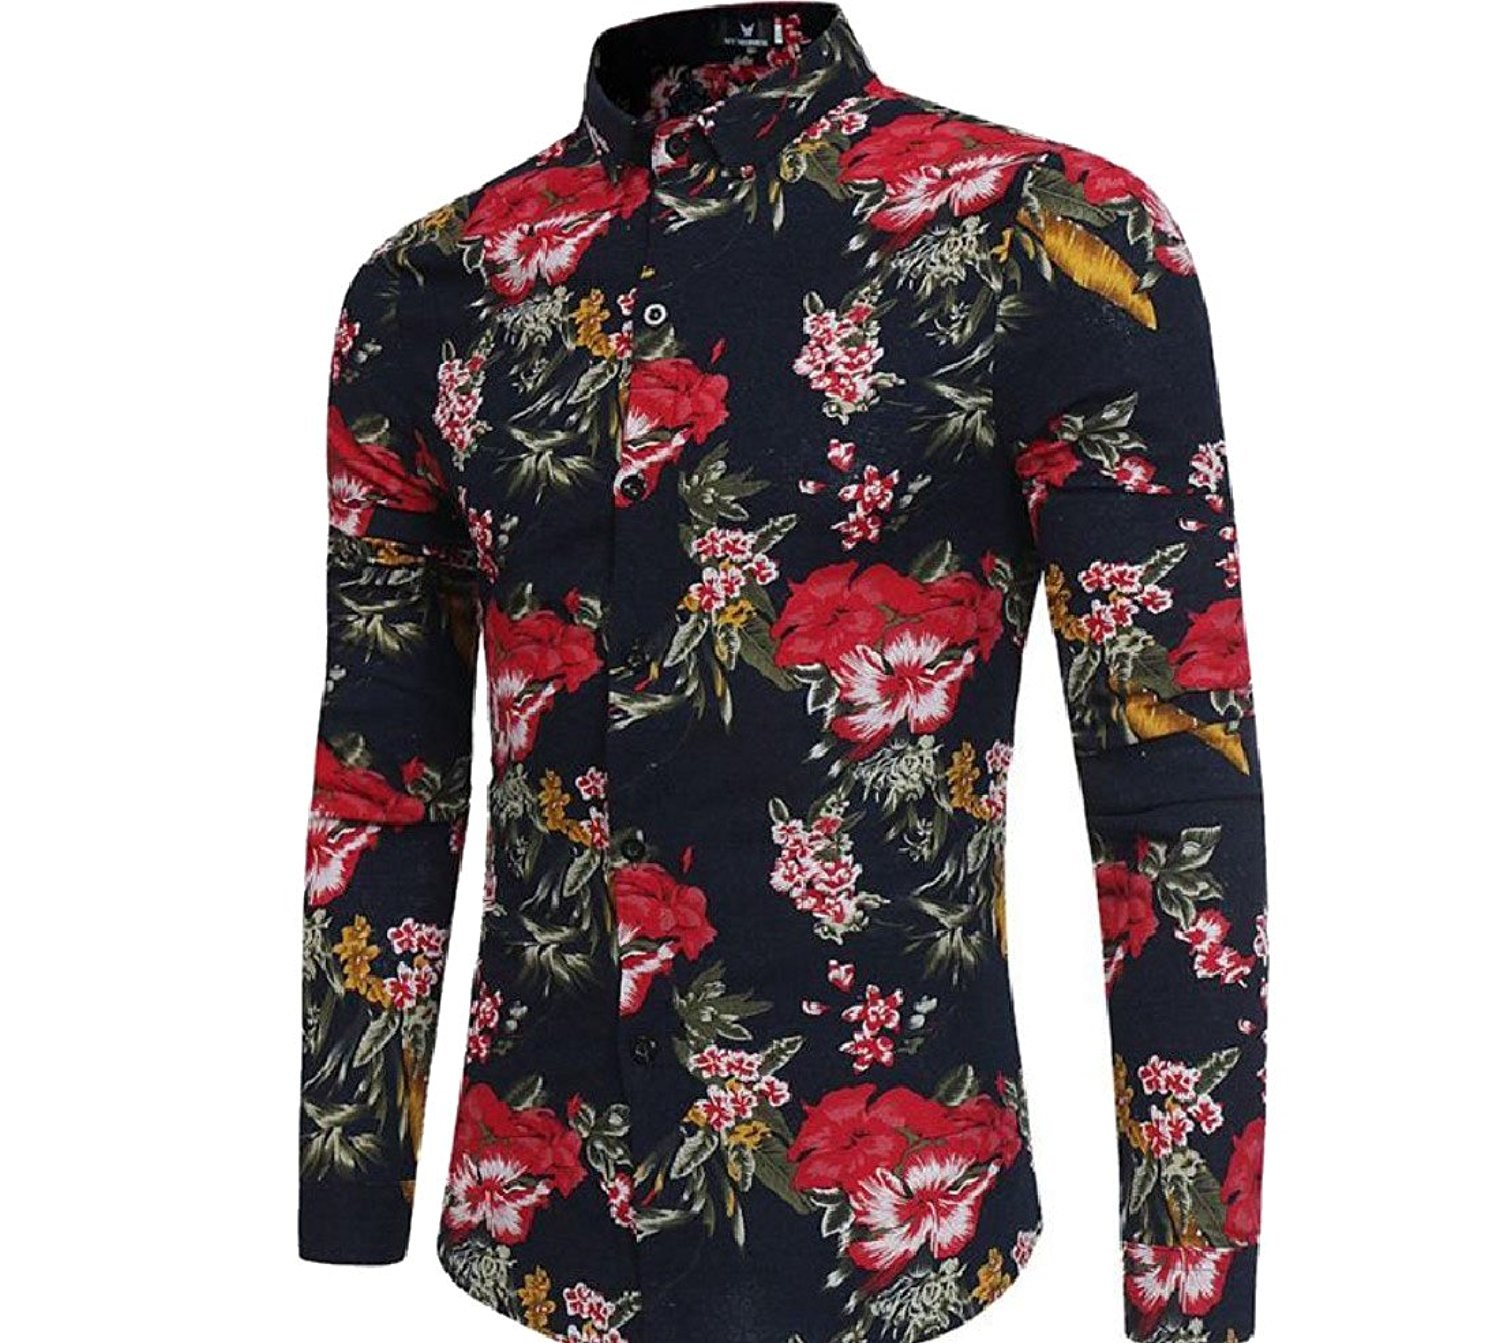 XTX Men Plus Size Casual Lapel Collar Long Sleeve Slim Fit Floral Printed Button Down Shirts